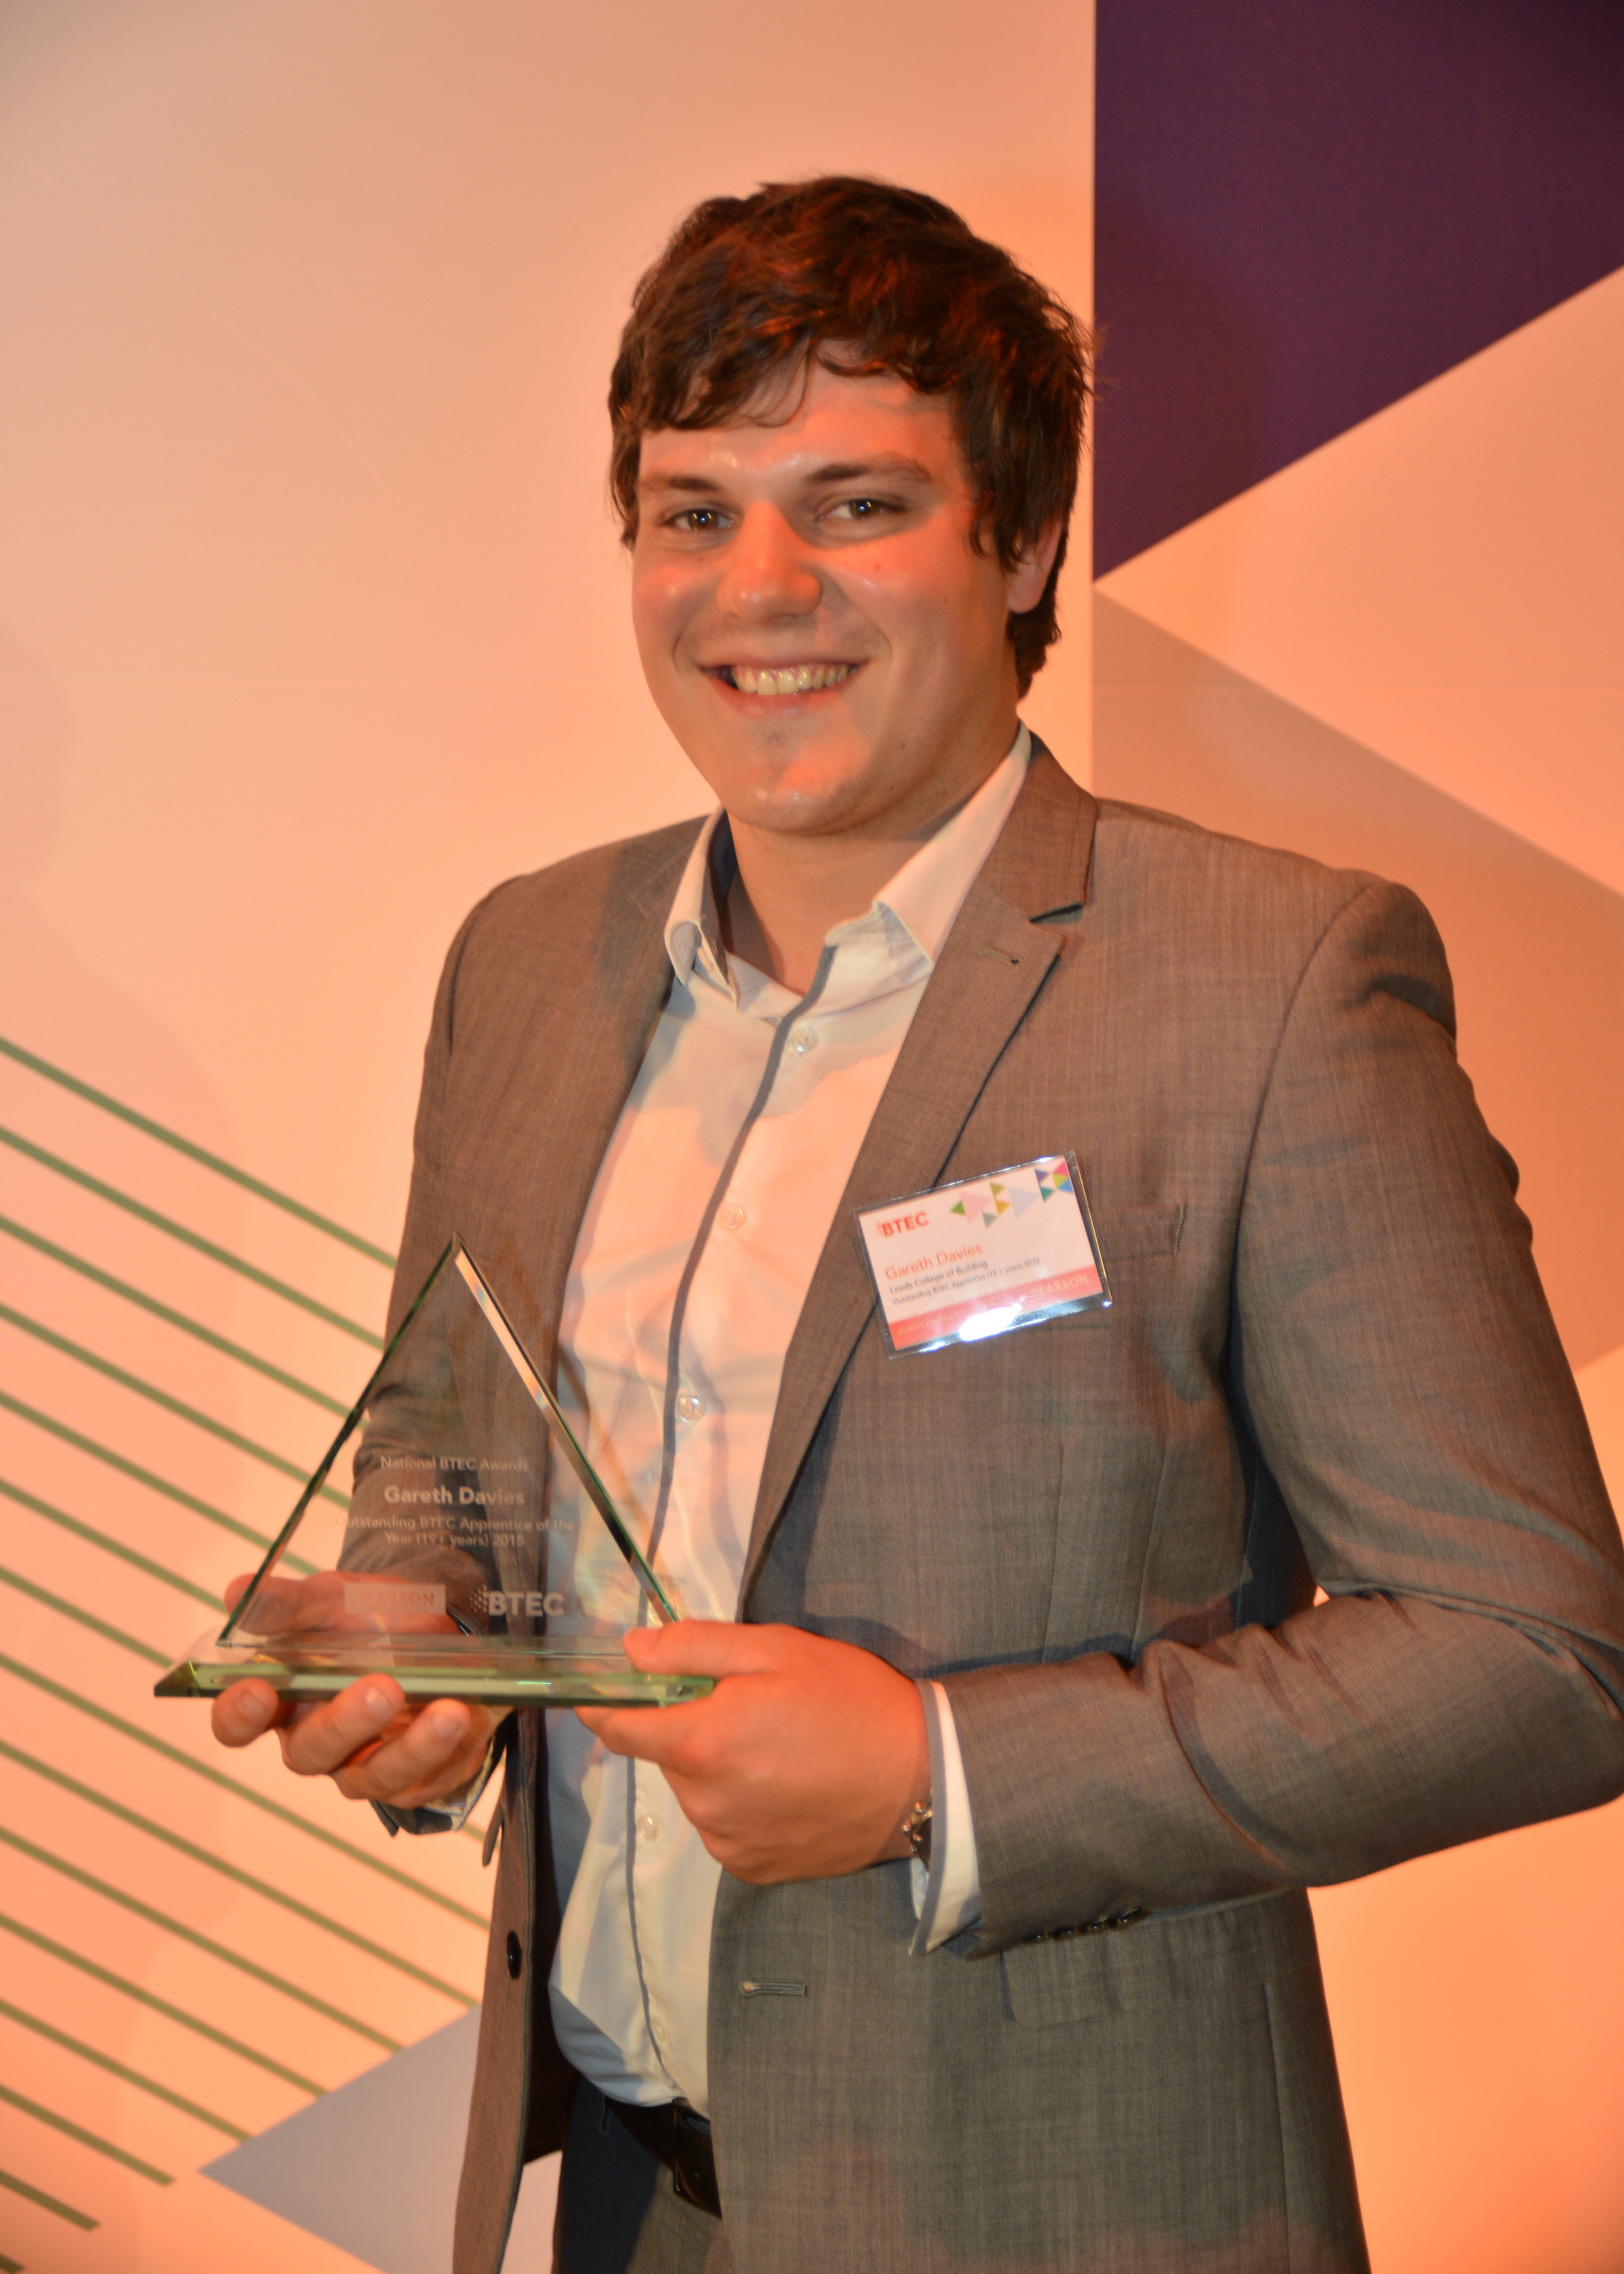 Gareth Davies, aged 24, Leeds College of Building